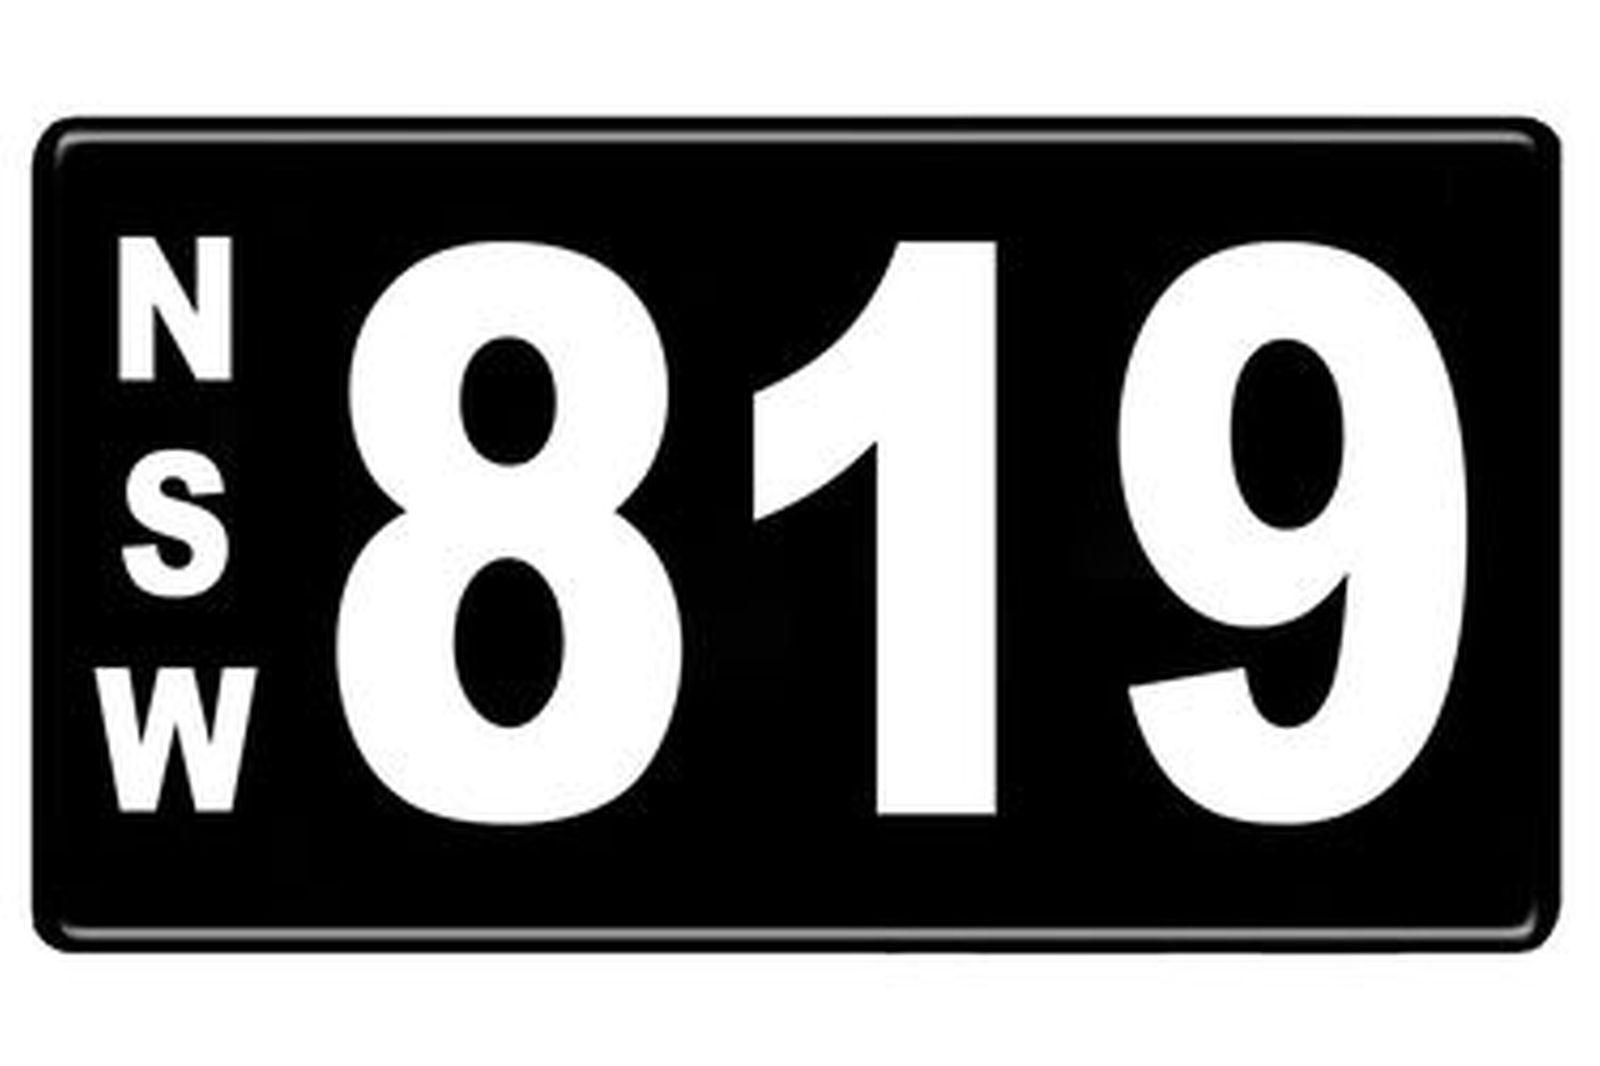 NSW Numerical Number Plates '819'